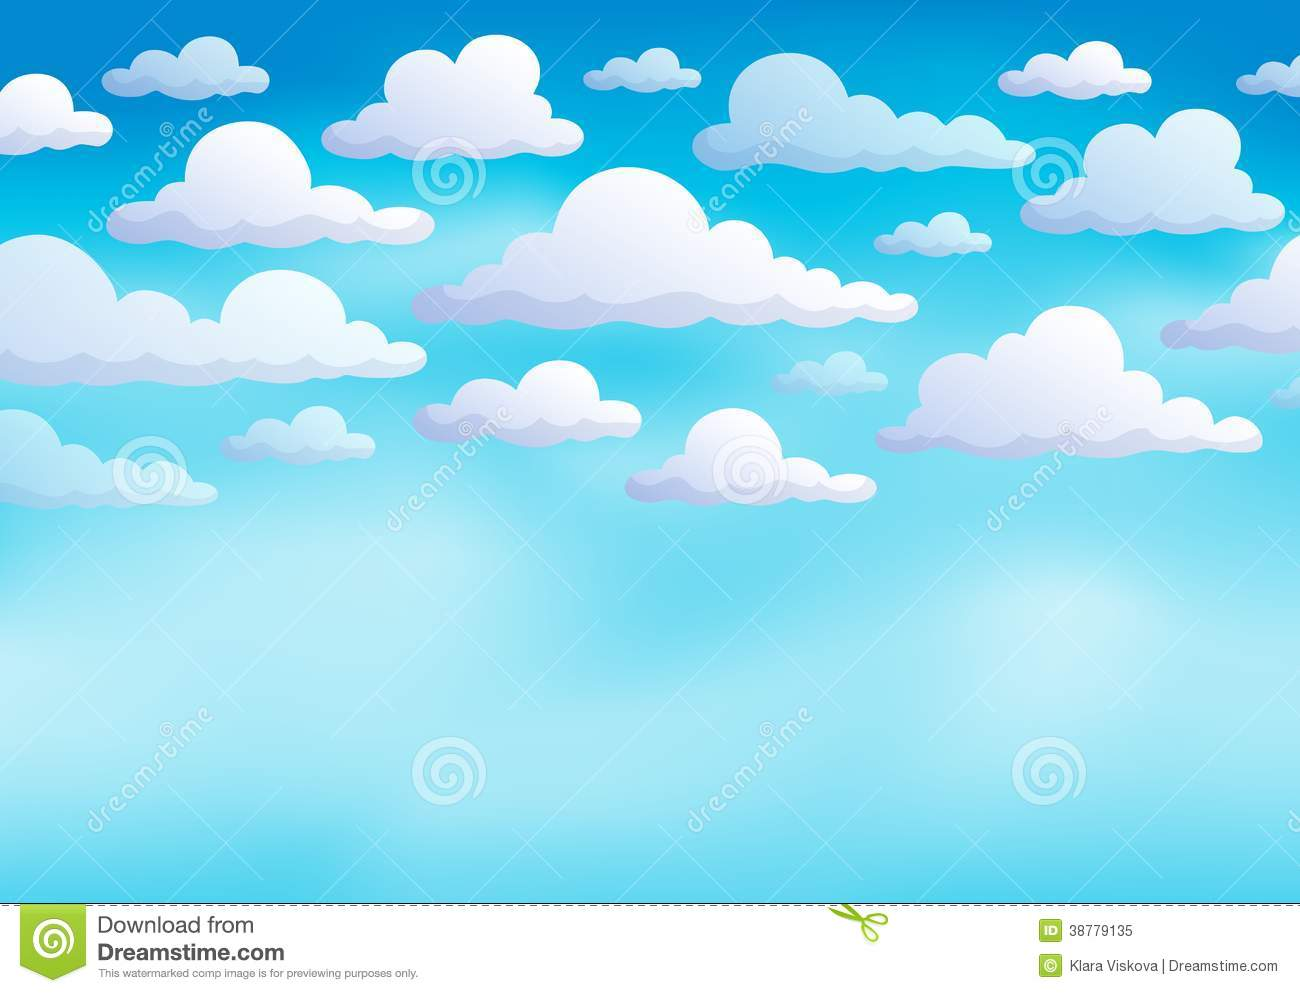 Sky Clipart Images.